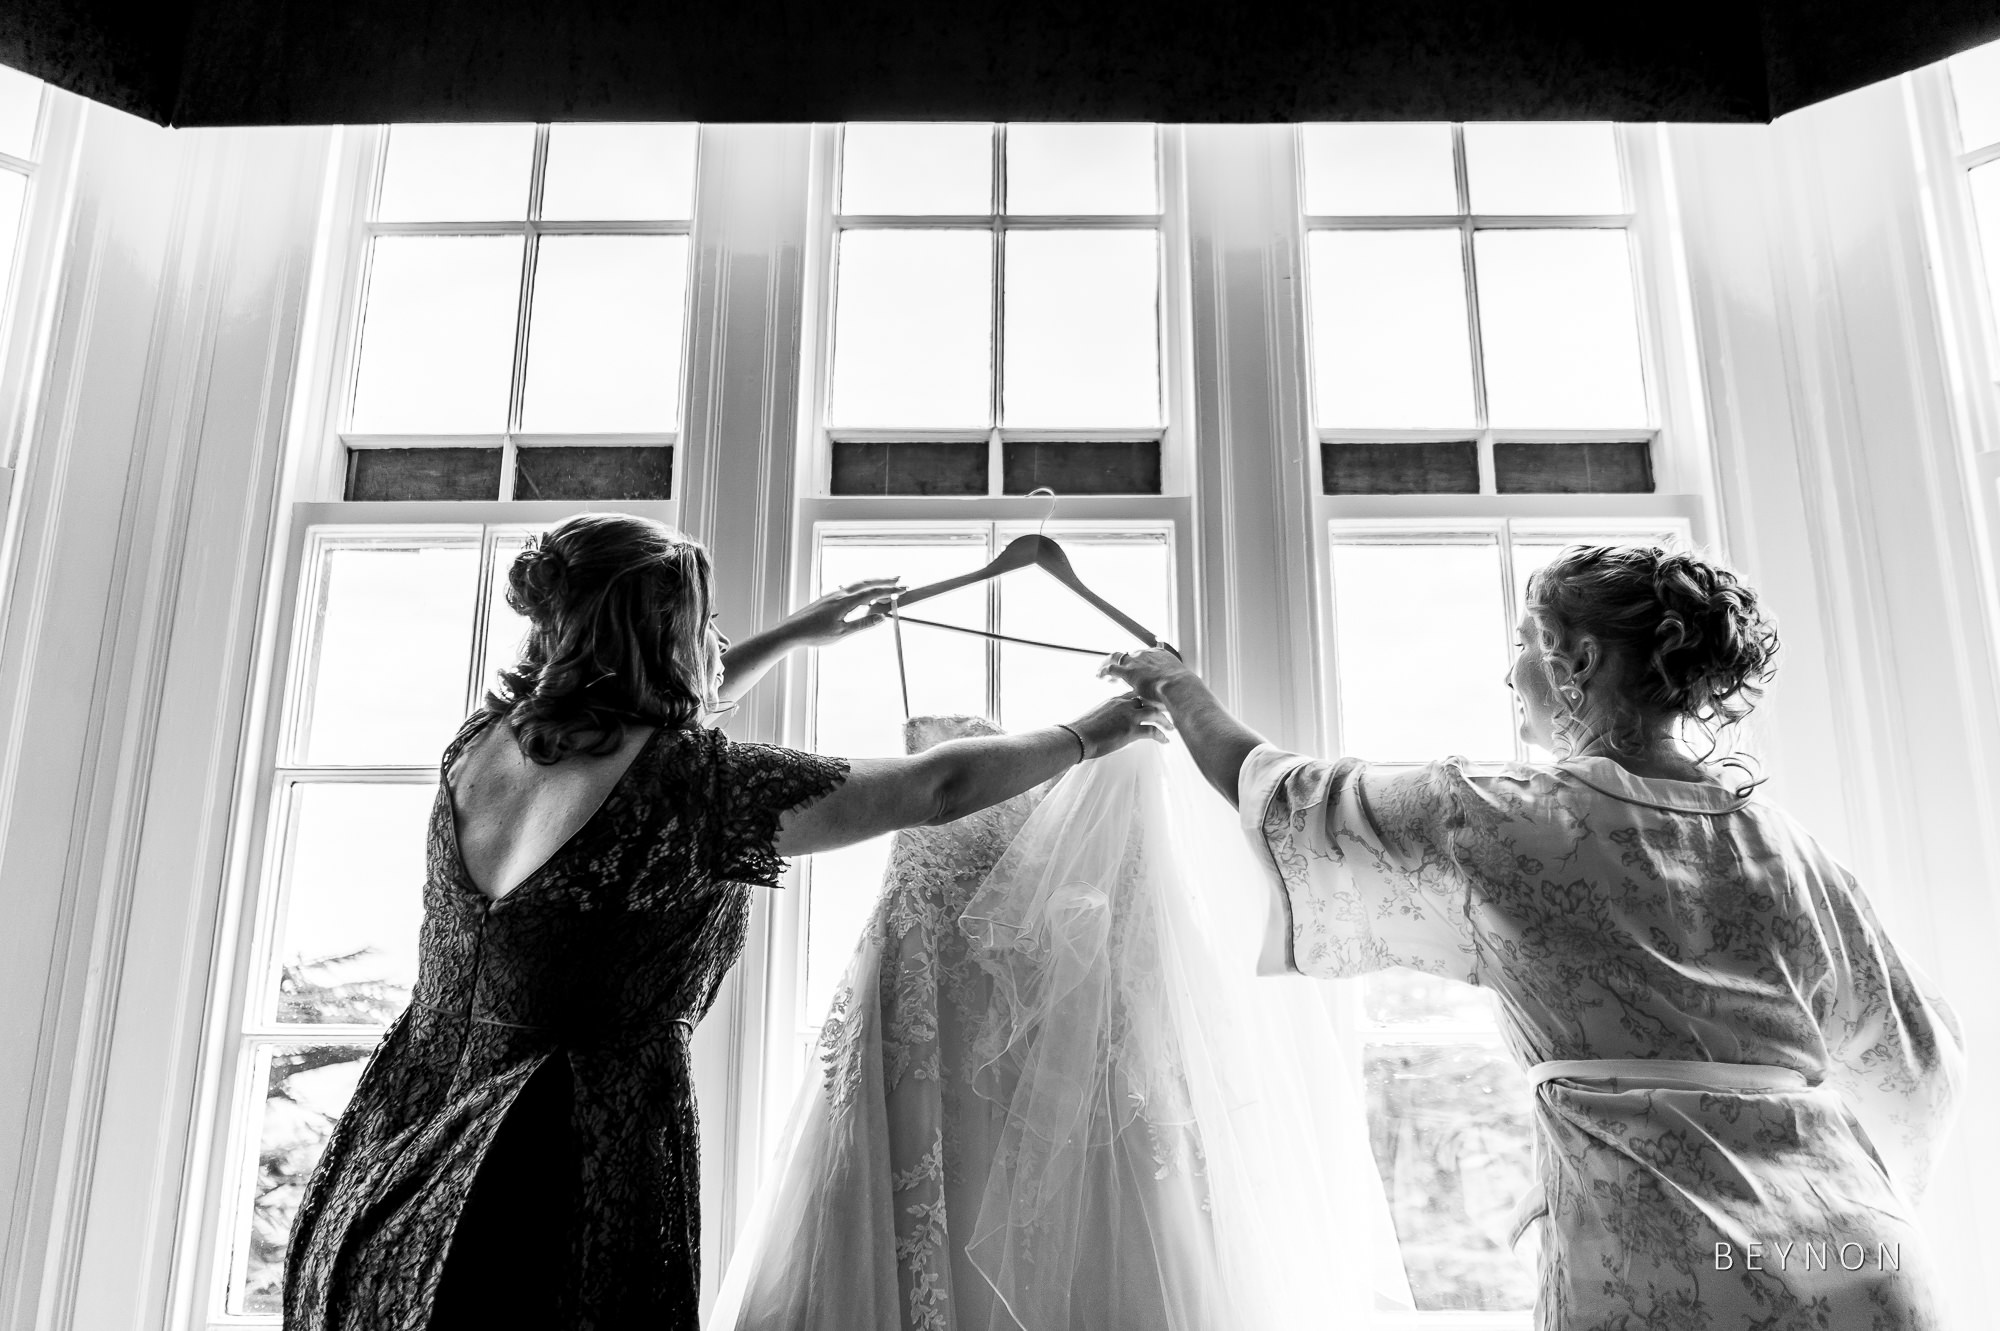 Bride and bridesmaid hold wedding dress